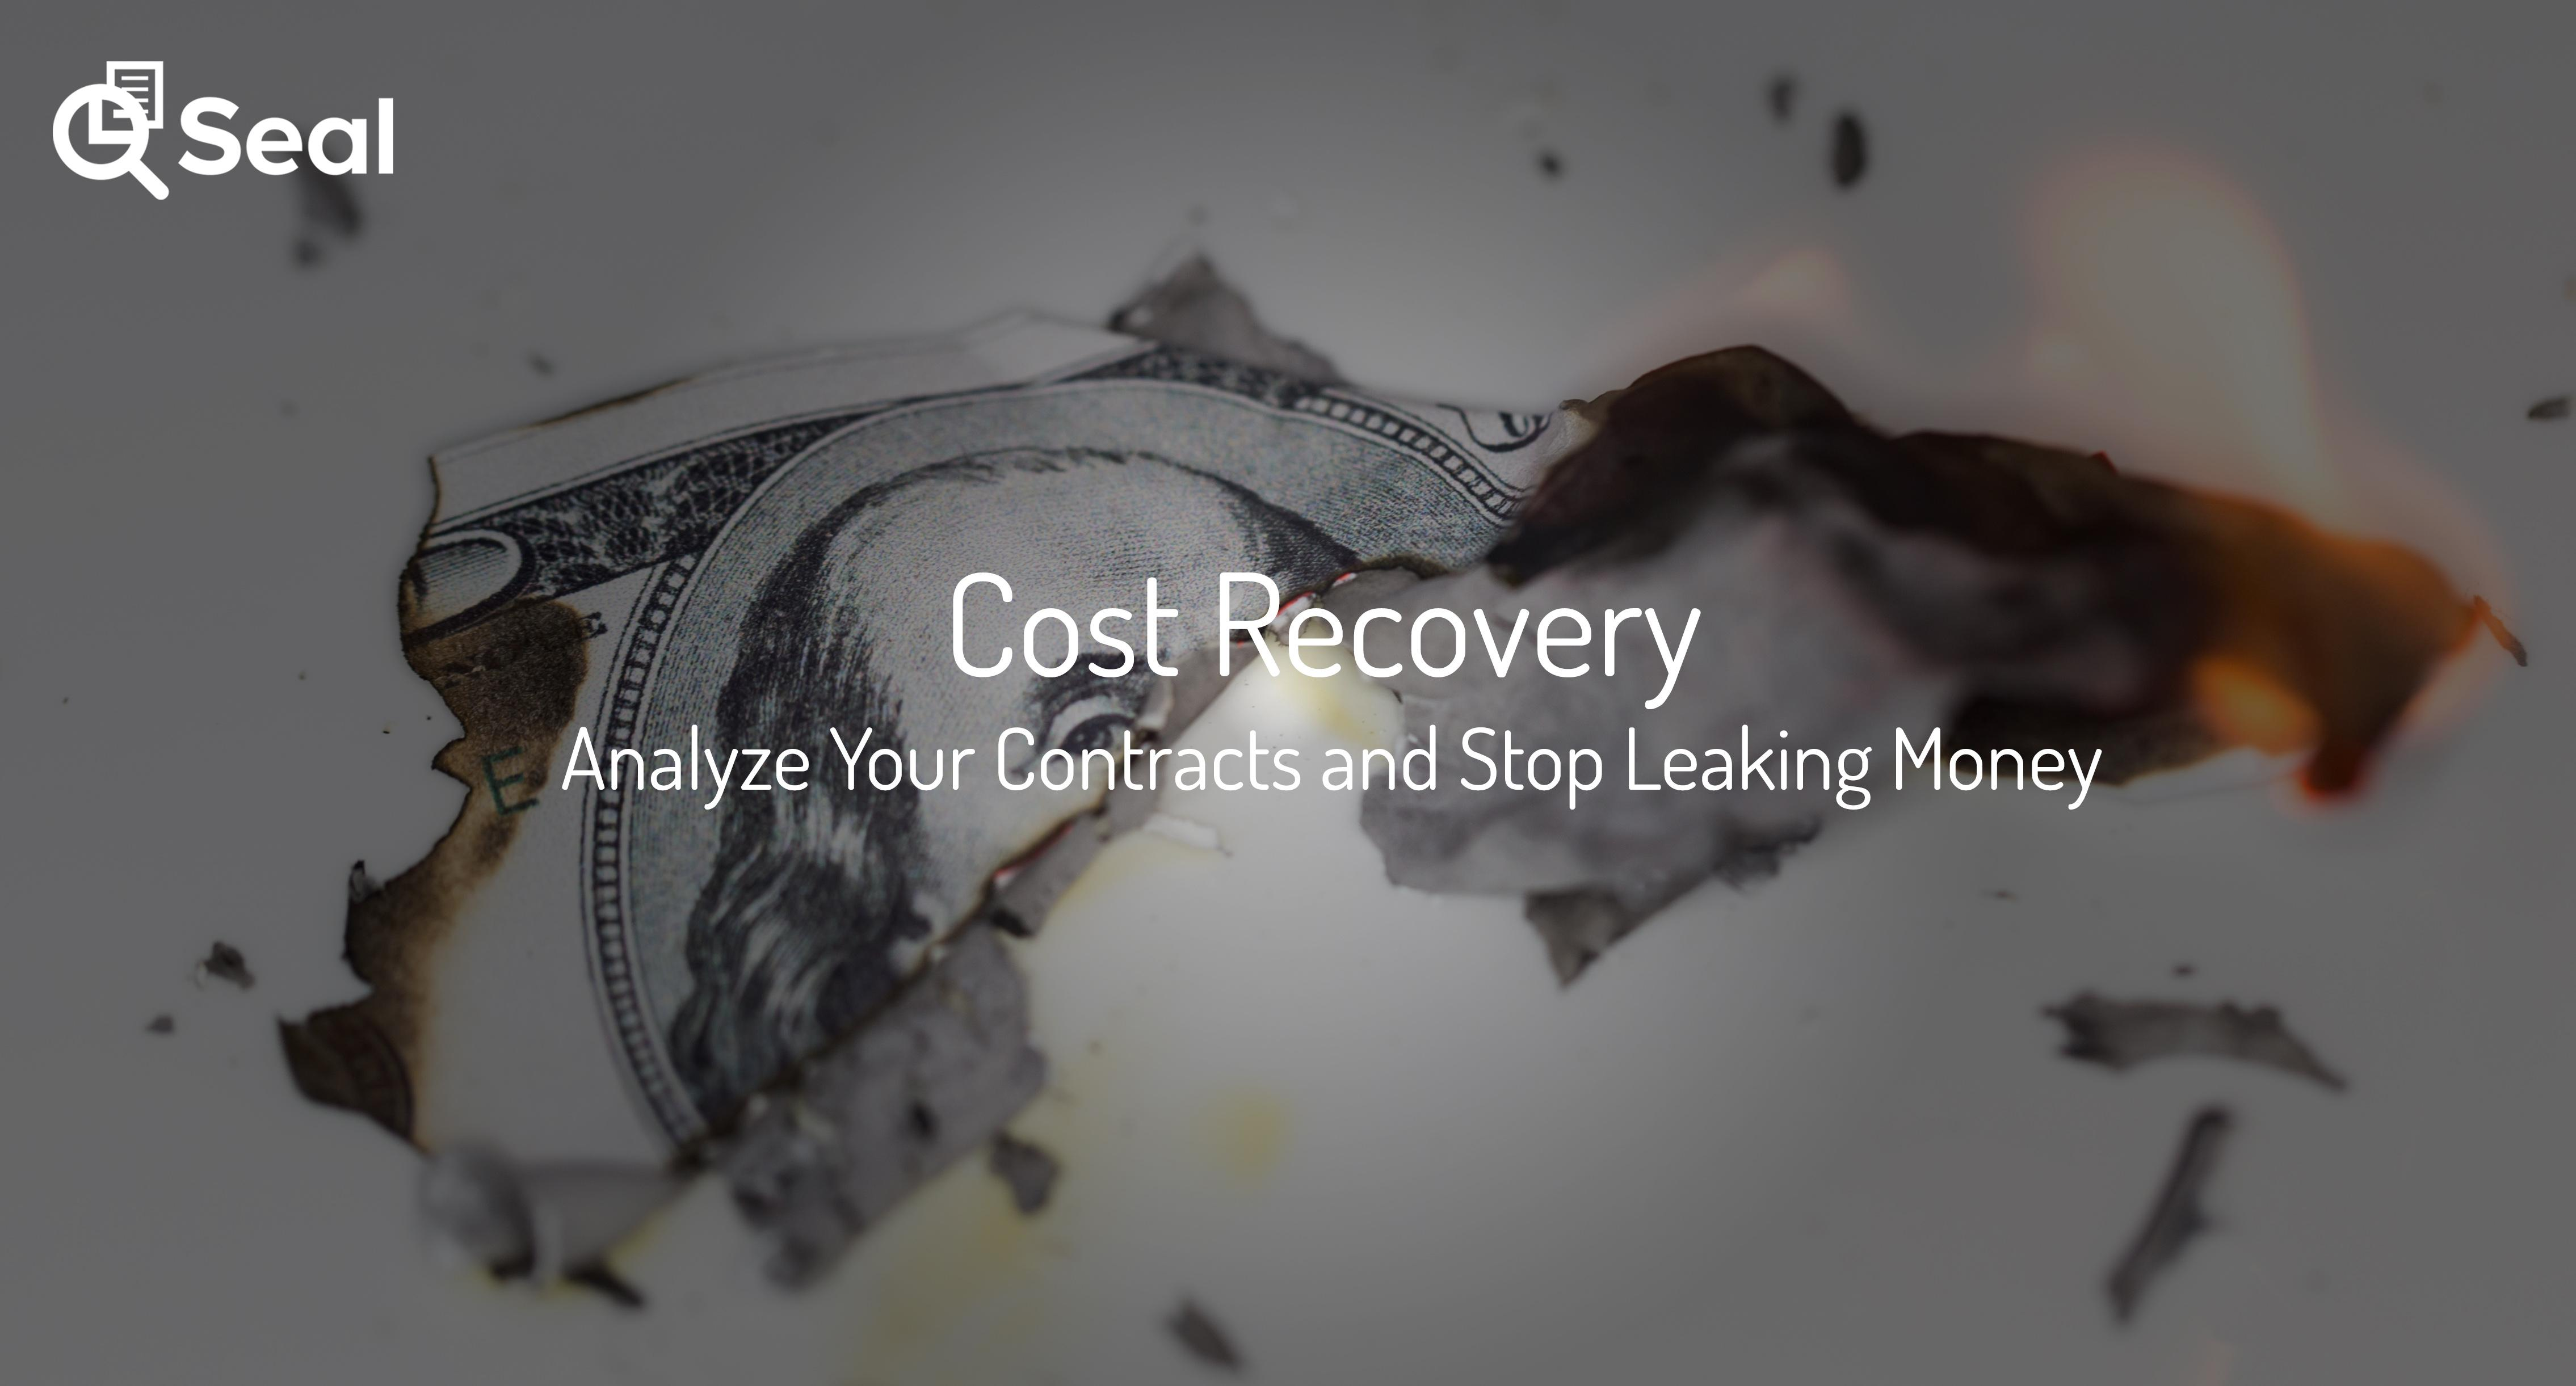 Cost Recovery – Analyze Your Contracts and Stop Leaking